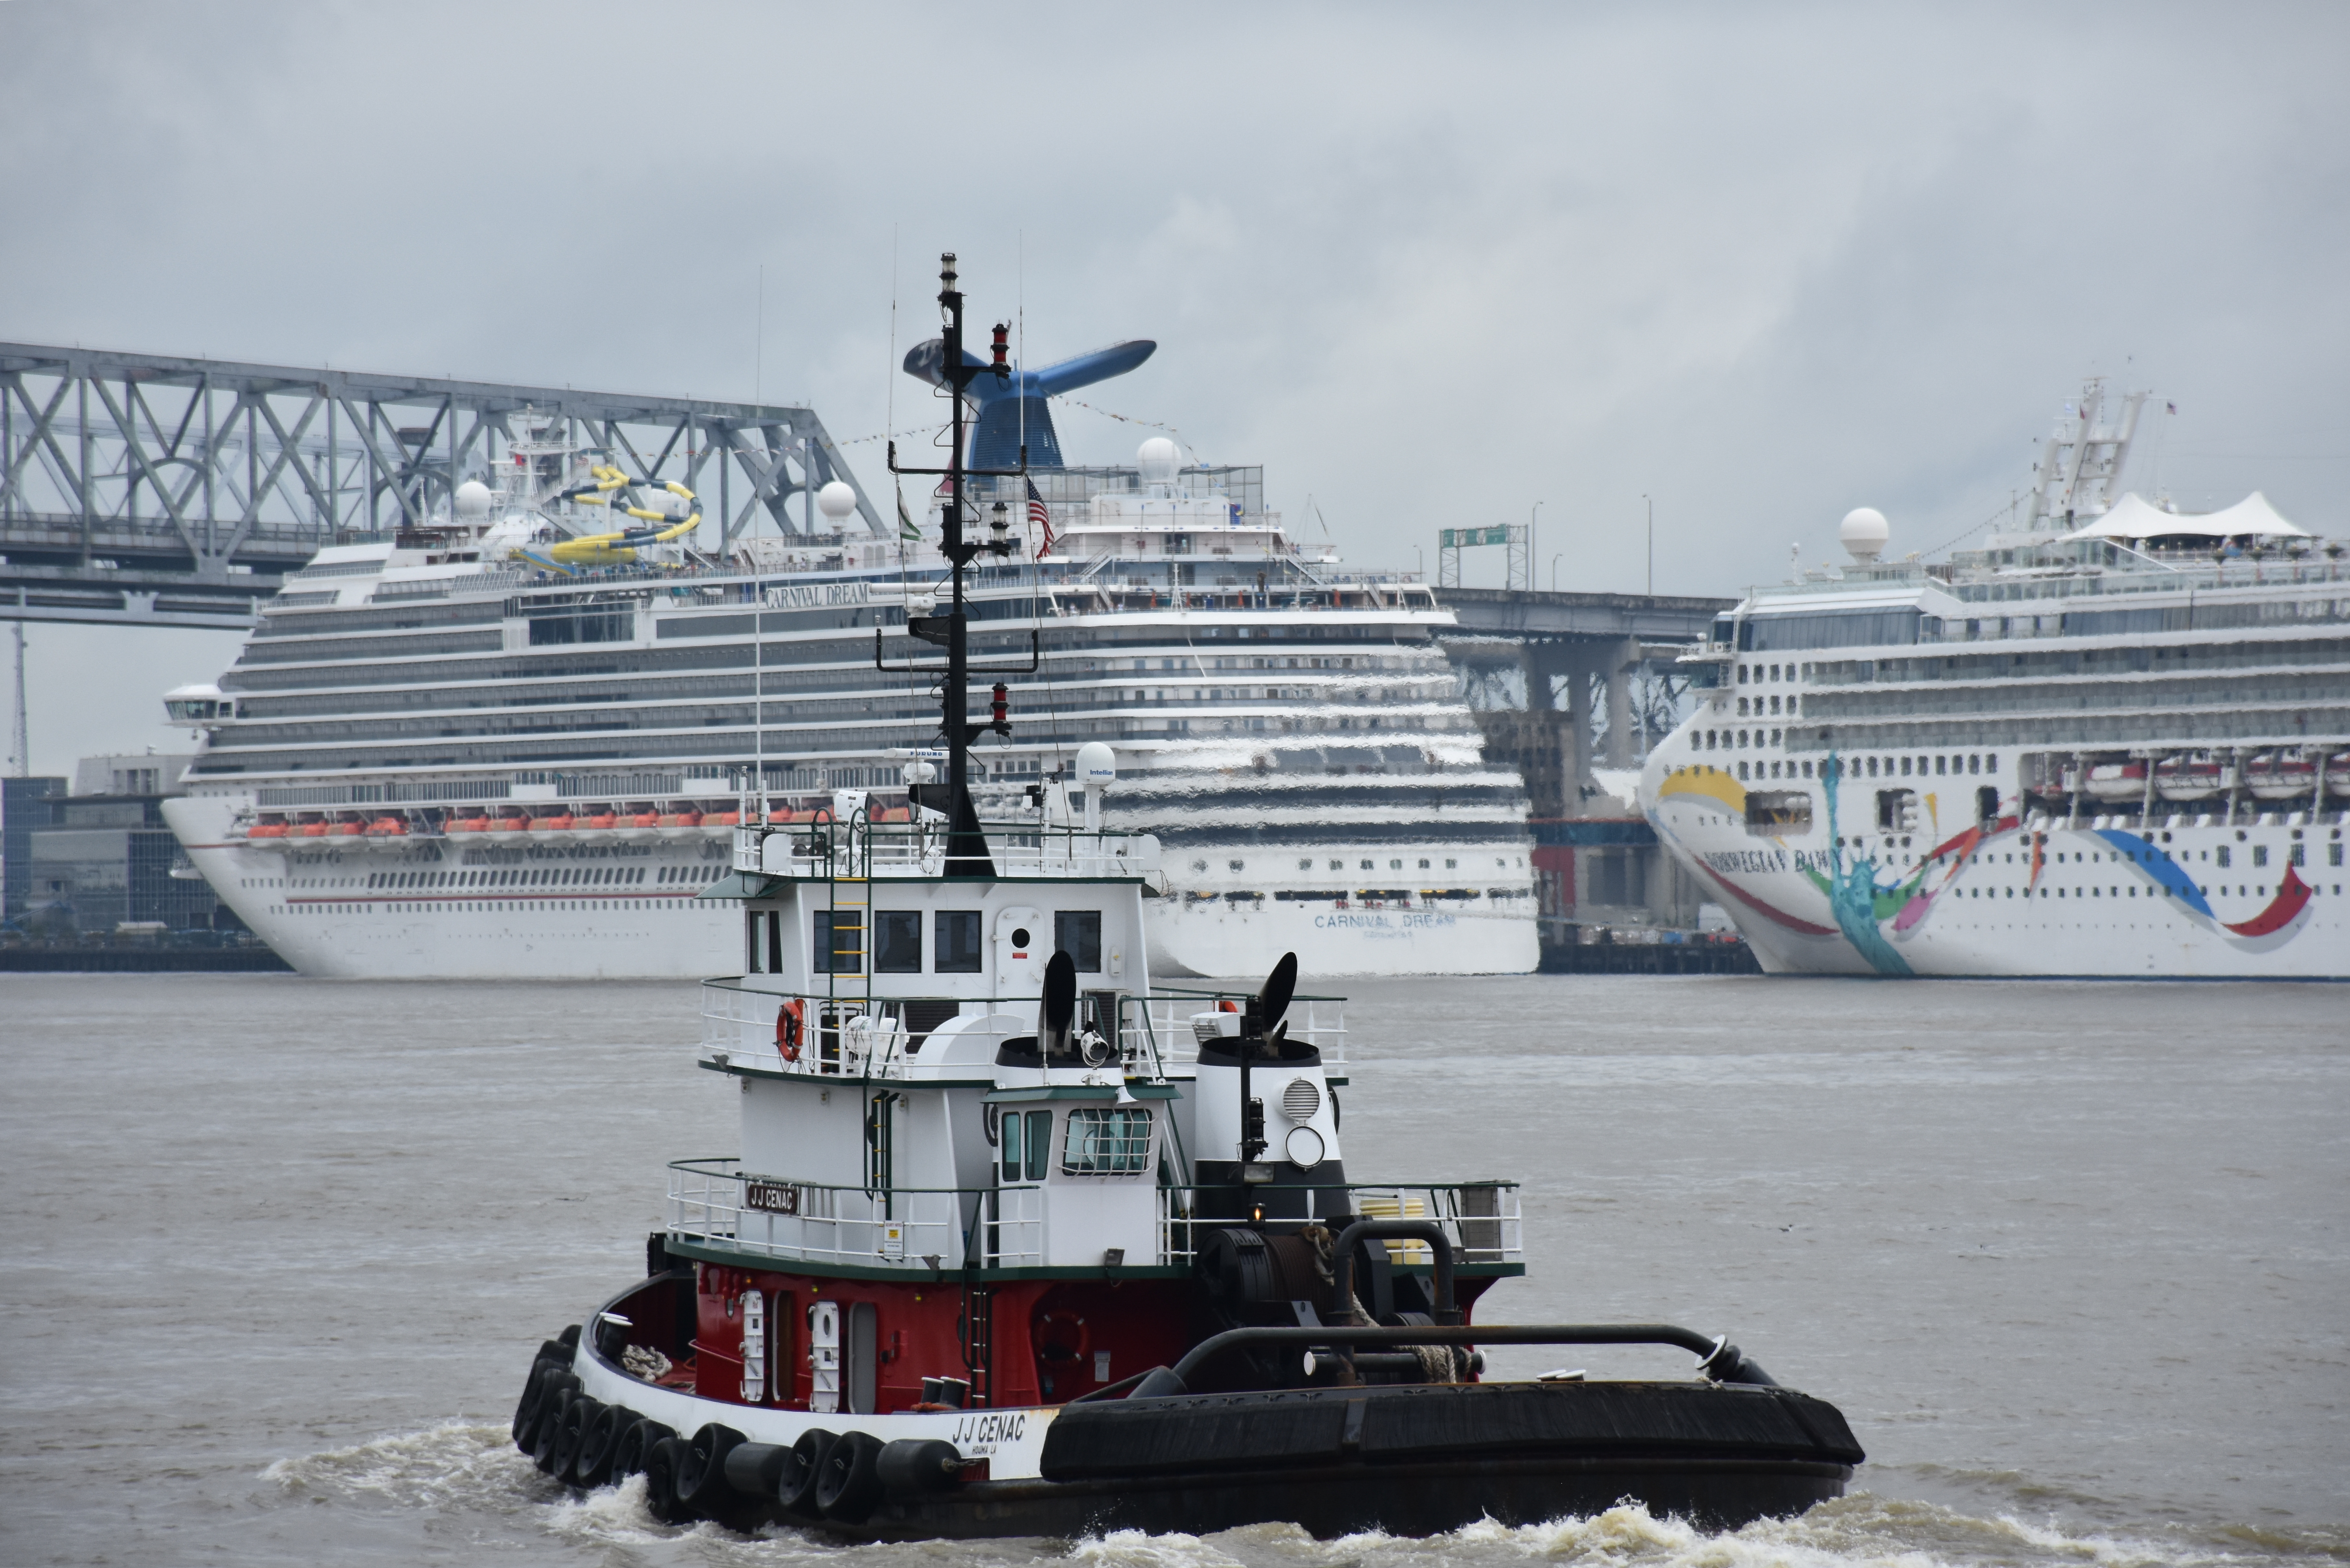 FileTug Boat And Cruise Ships Near New Orleans JPG Wikimedia - Cruise ships new orleans